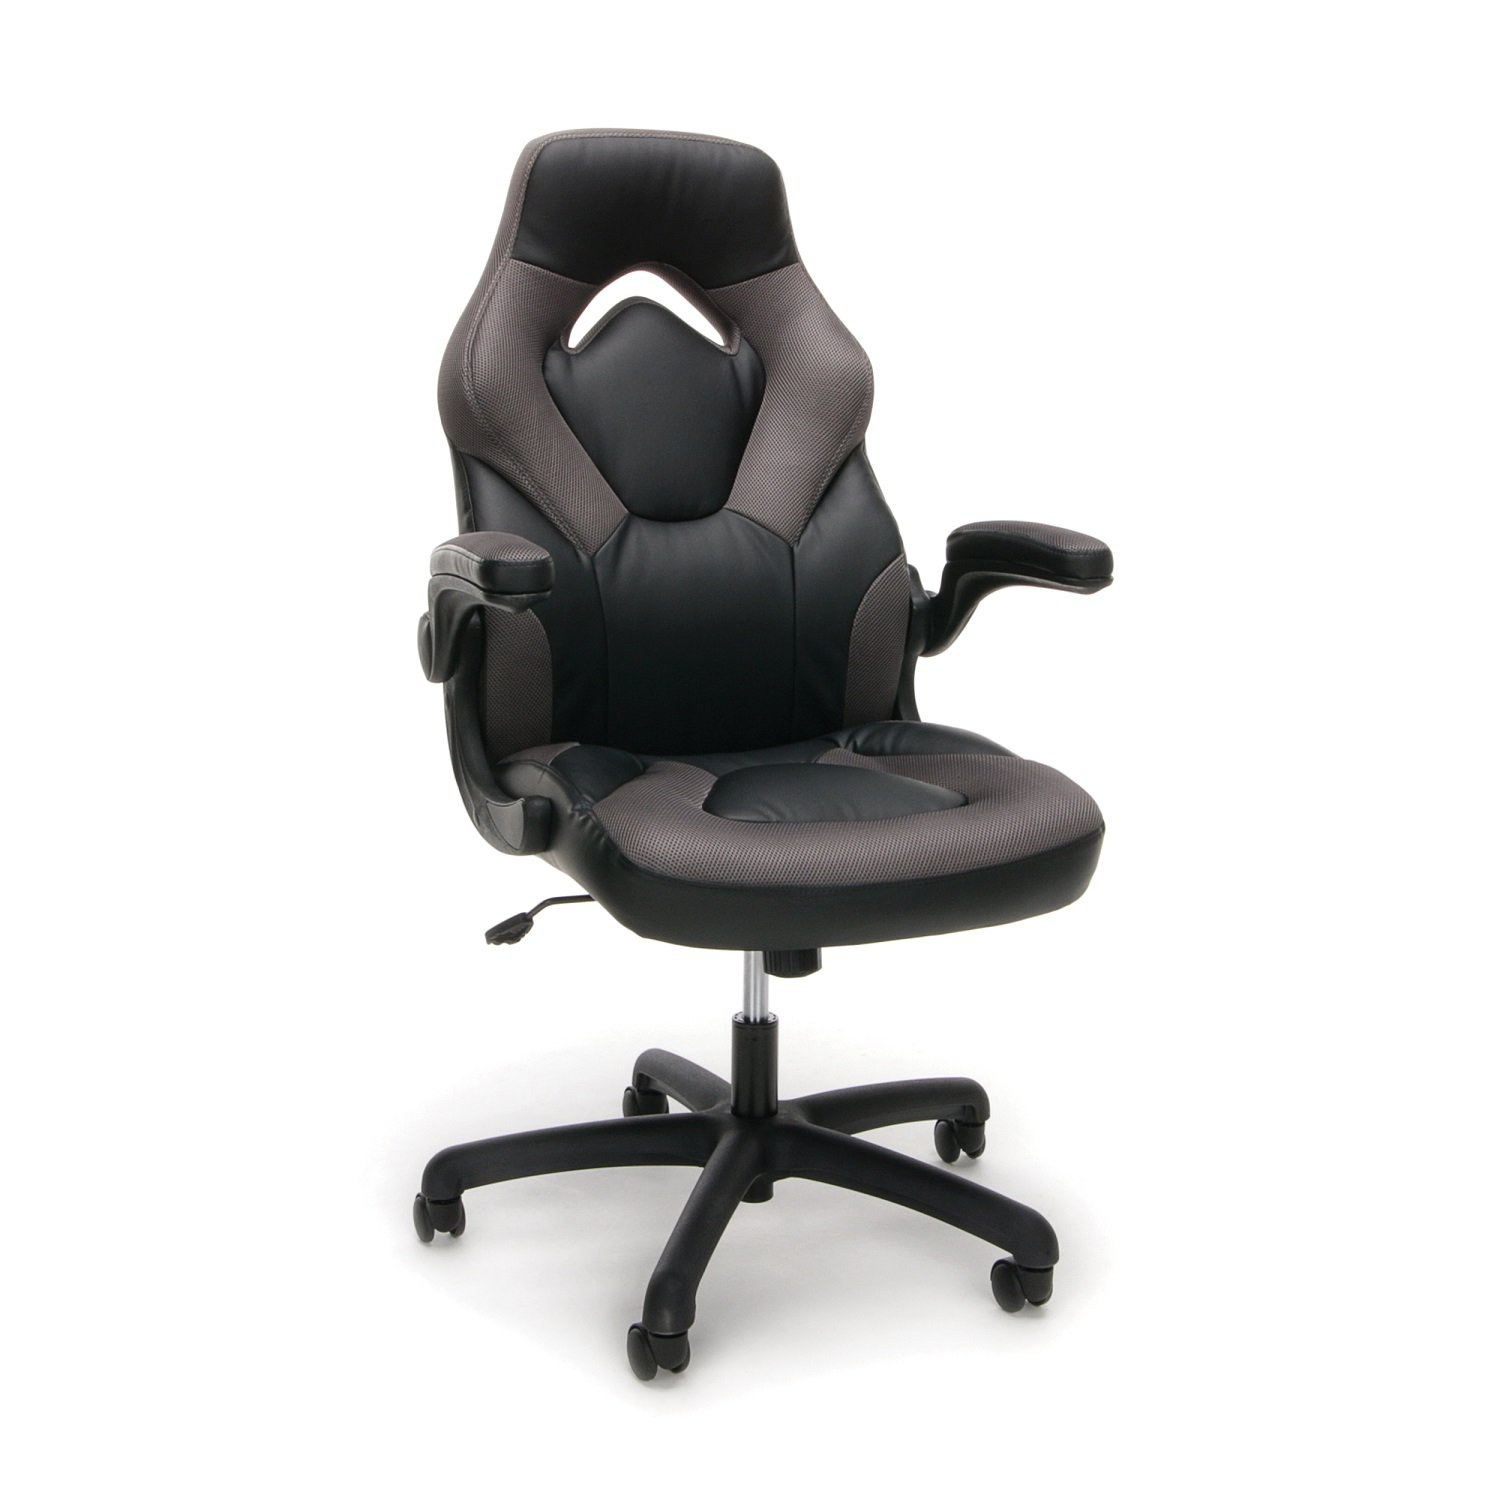 Essentials Racing Style Leather Gaming Chair - Ergonomic Swivel Computer, Office or Gaming Chair, Gray (ESS-3085-GRY) by OFM